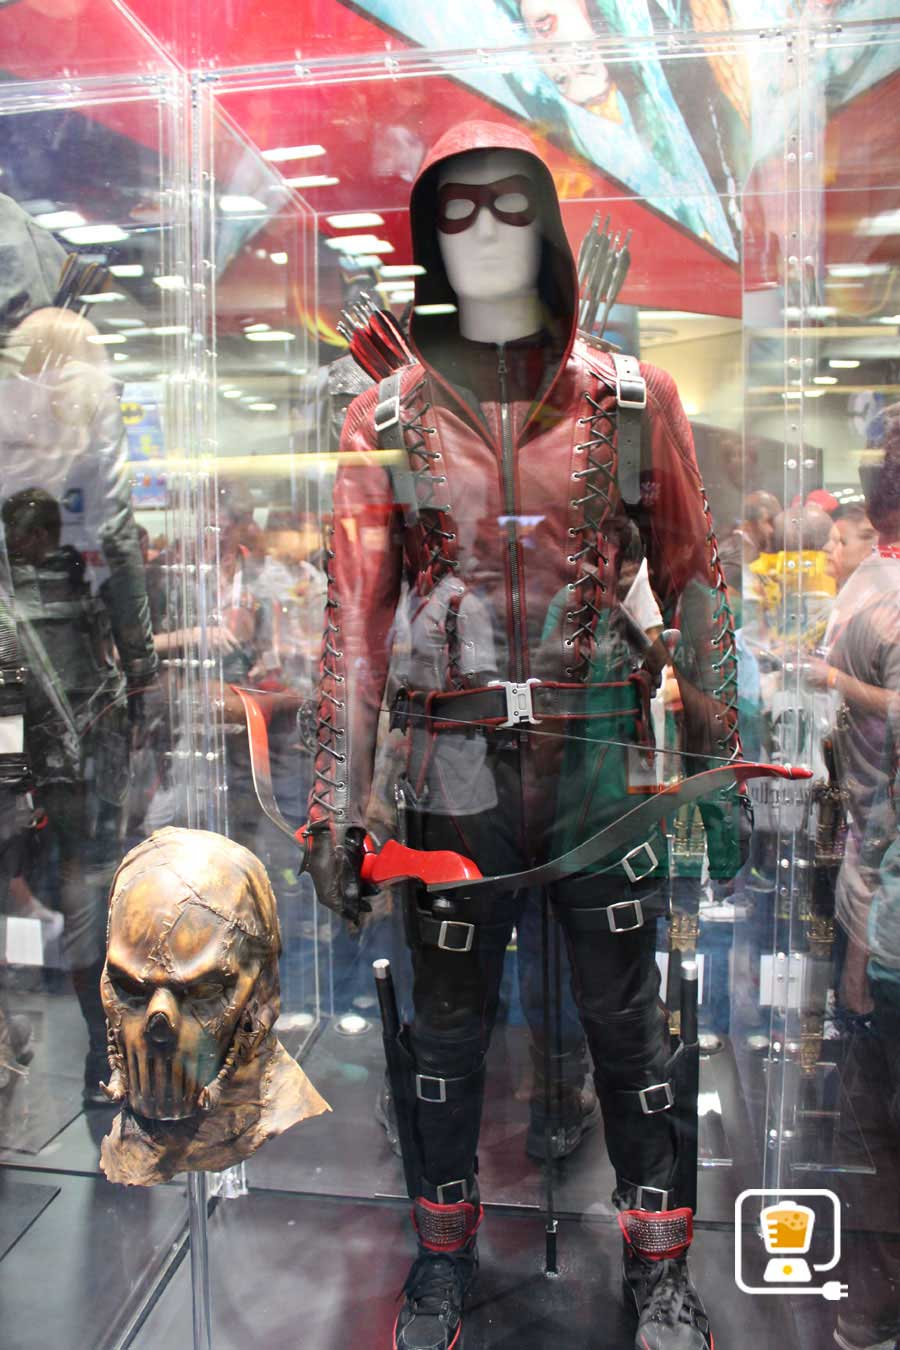 See Flash And Arrow's Amazing Costumes And Gadgets On Display At Comic-Con #32888